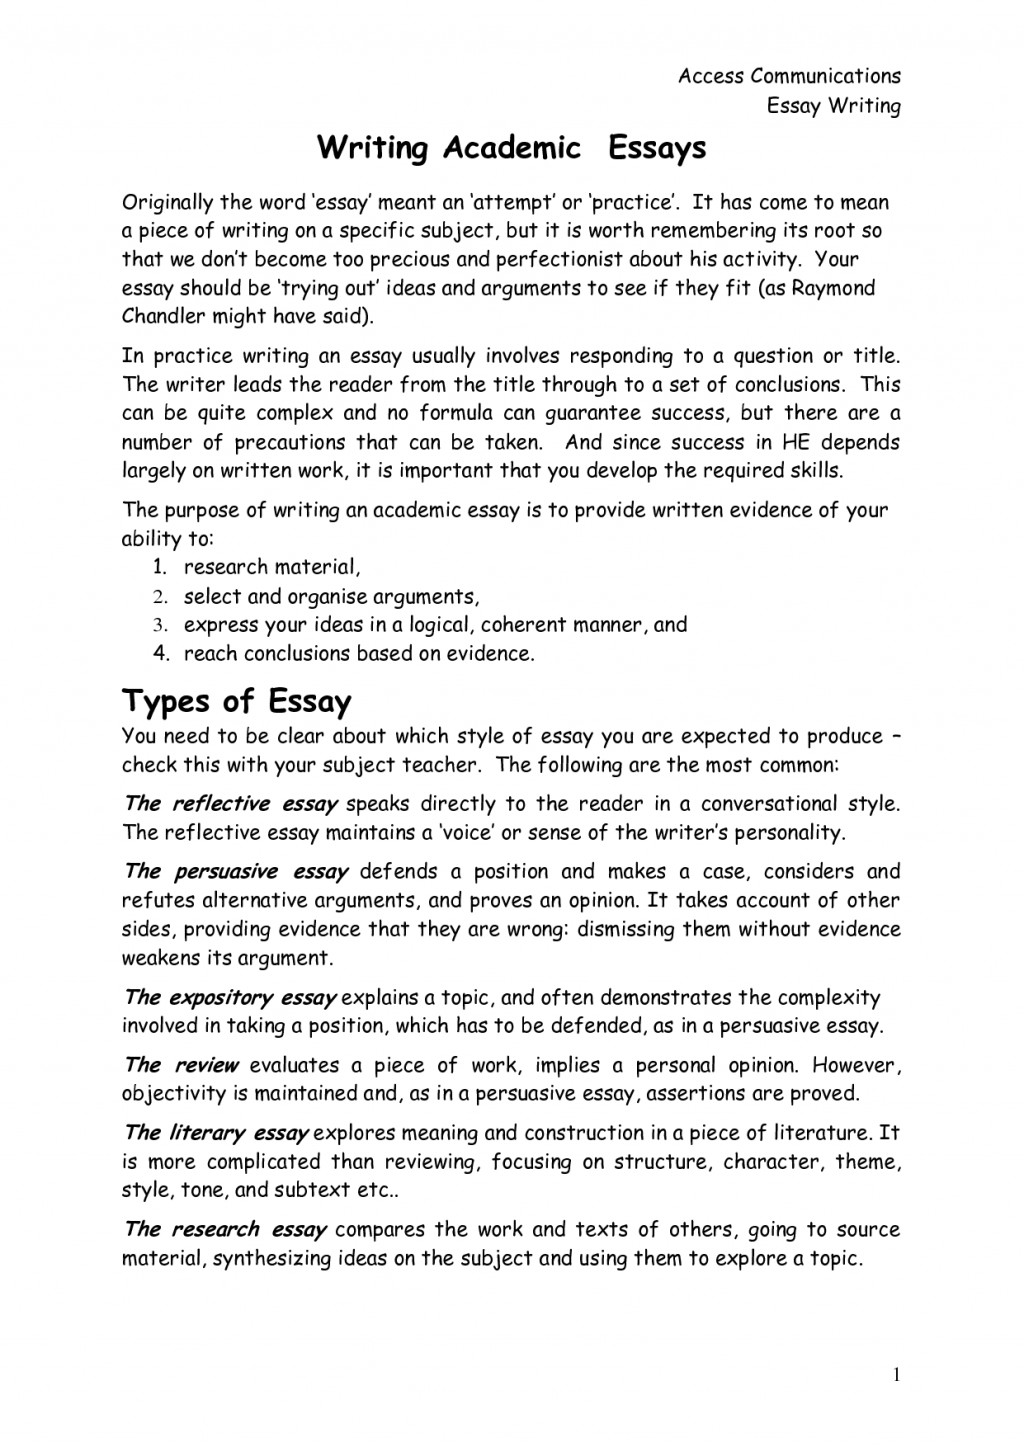 016 Reflective Essay On Academic Writings Beautiful Examples Sample Pdf About Writing English 101 Large